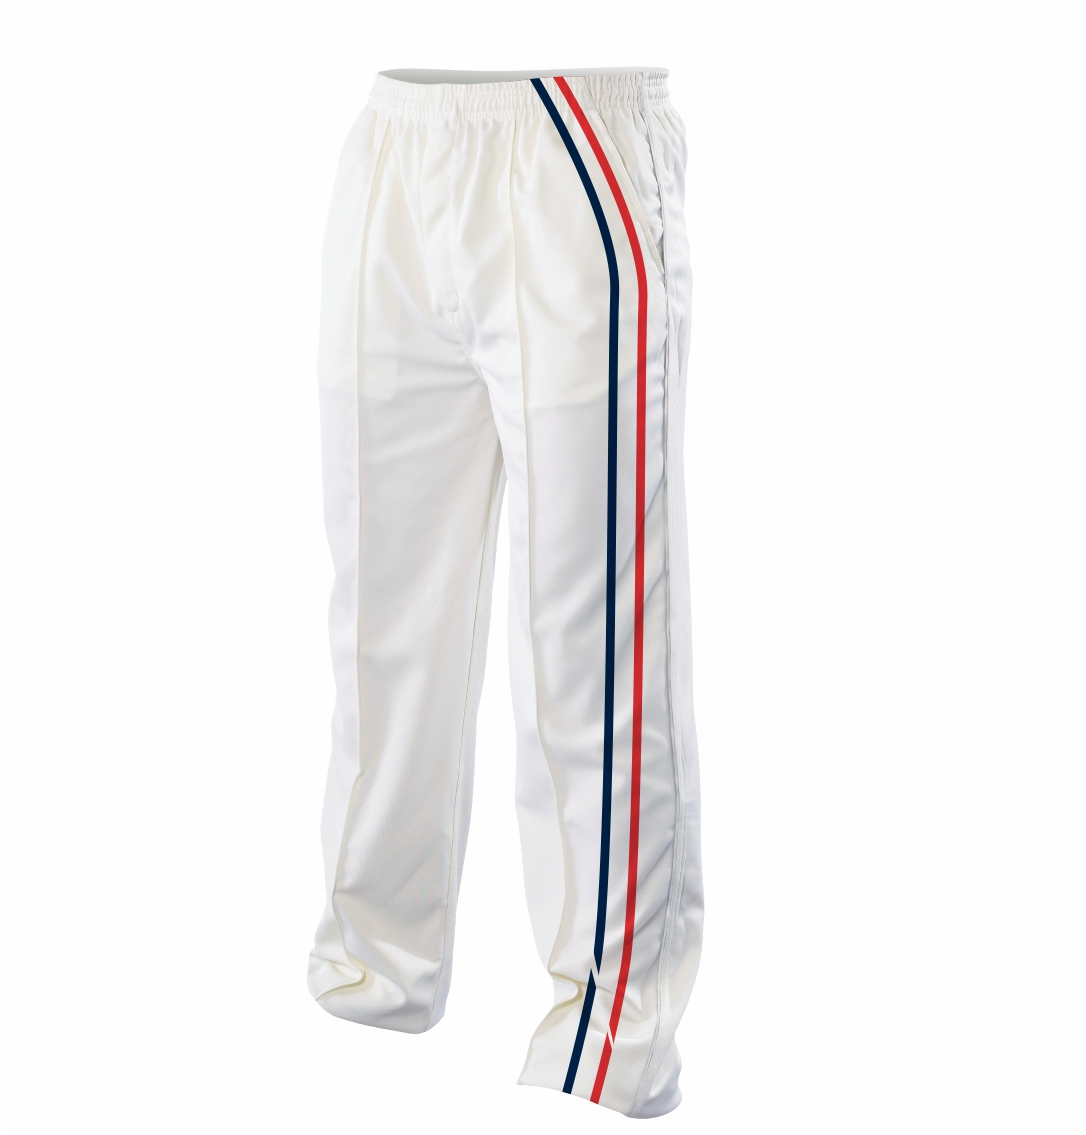 Panelled Zuco pants - Morne